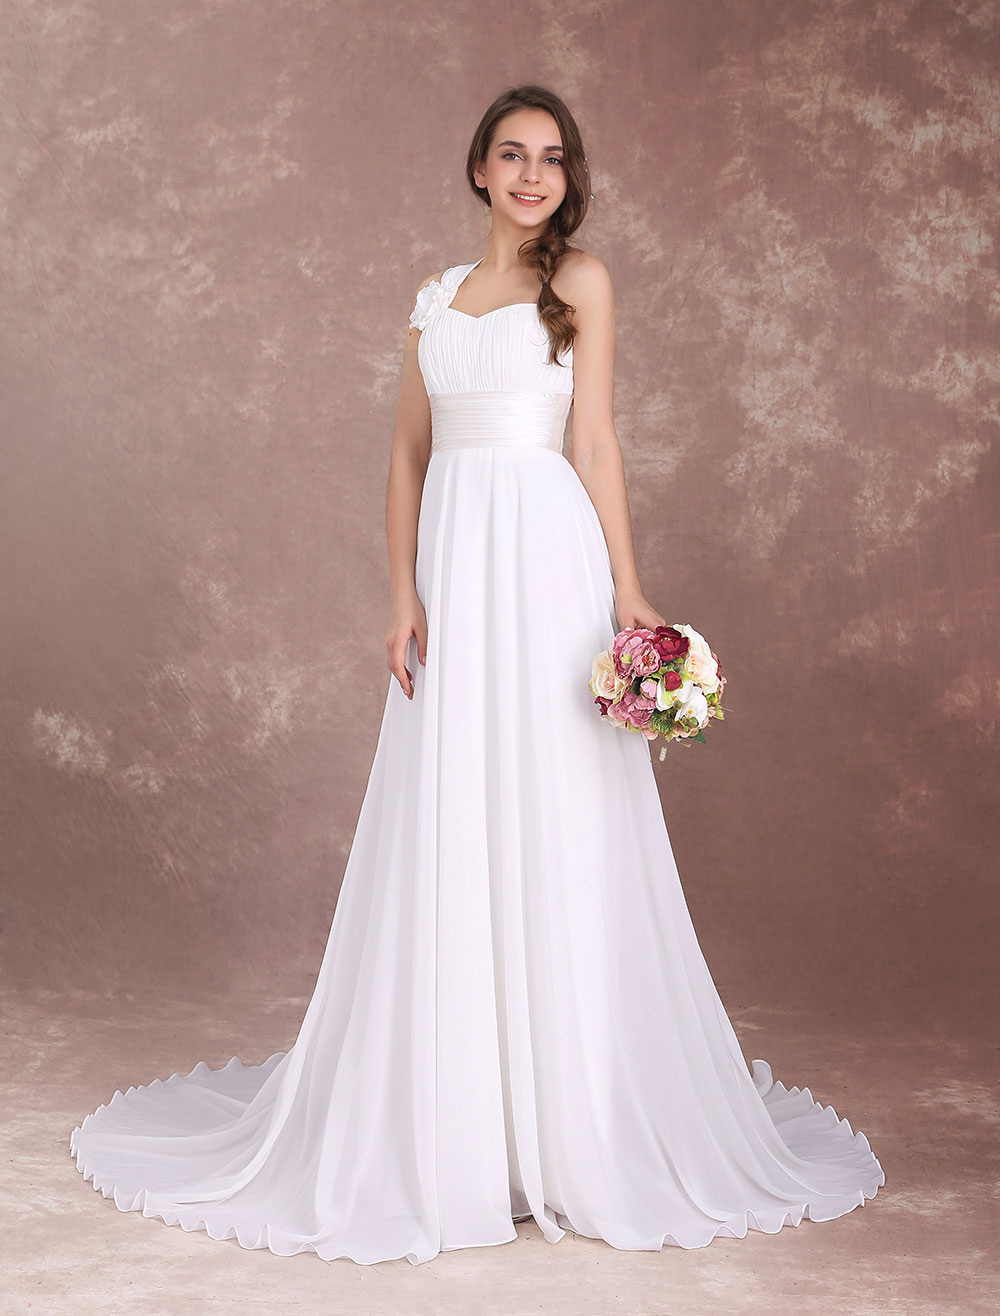 Buy Beach Wedding Dresses One Shoulder Boho Bridal Gown Pleated Chiffon Ivory Flowers Summer Wedding Gown With Train for $131.99 in Milanoo store